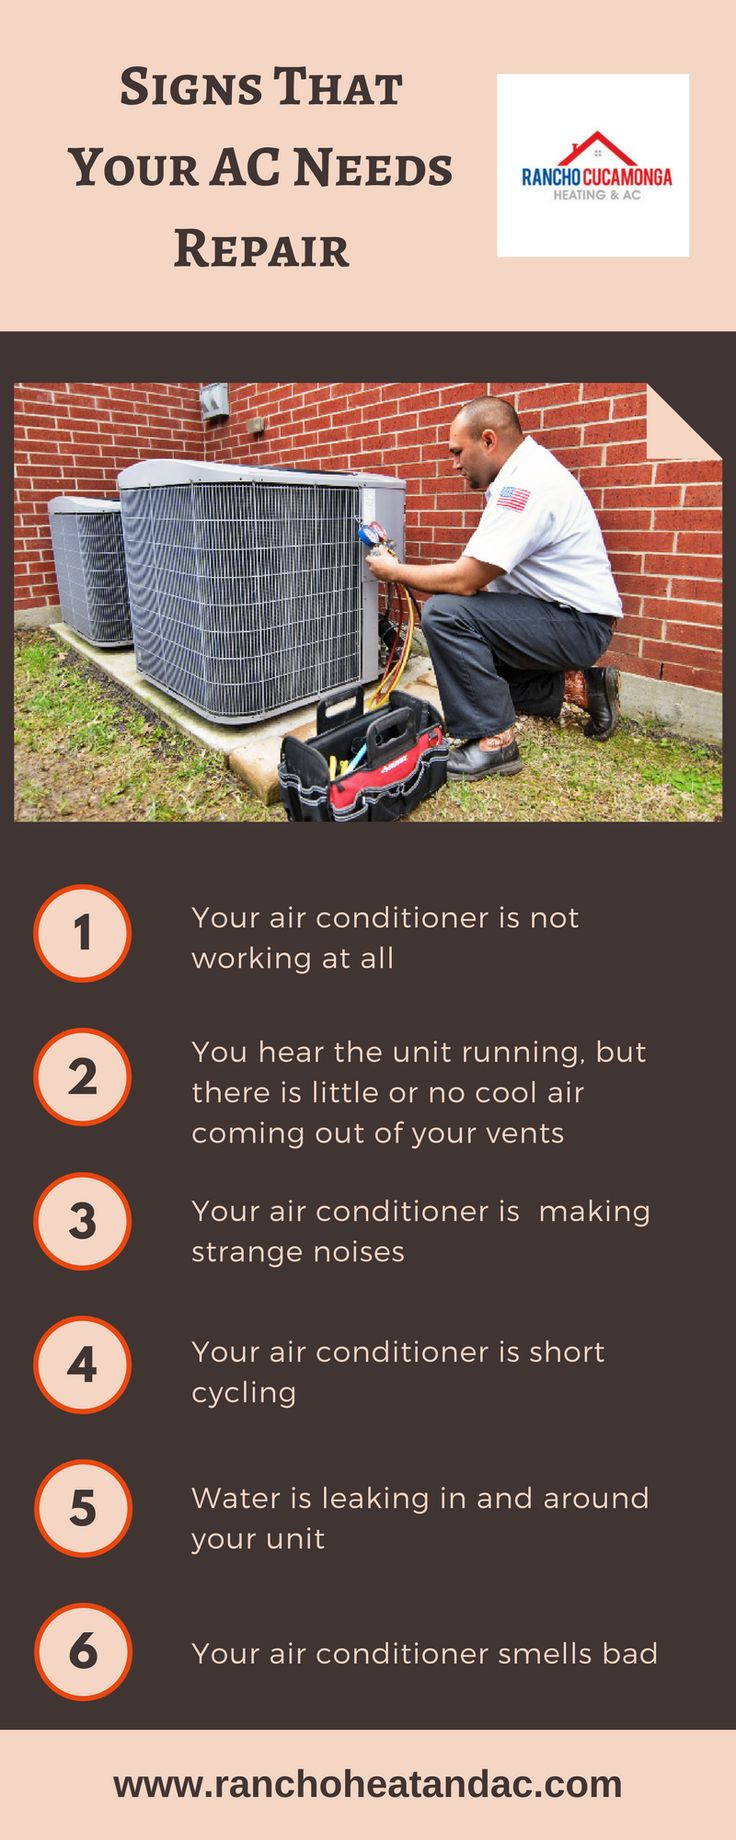 This infographic shares information about the Signs that AC needs repair. Rancho Cucamonga Heating and Air Conditioning is the best air conditioning service provider. They offer reliable air conditioning repair services in Rancho Cucamonga, Upland, Montclair, Fontana, and Ontario at the best price.